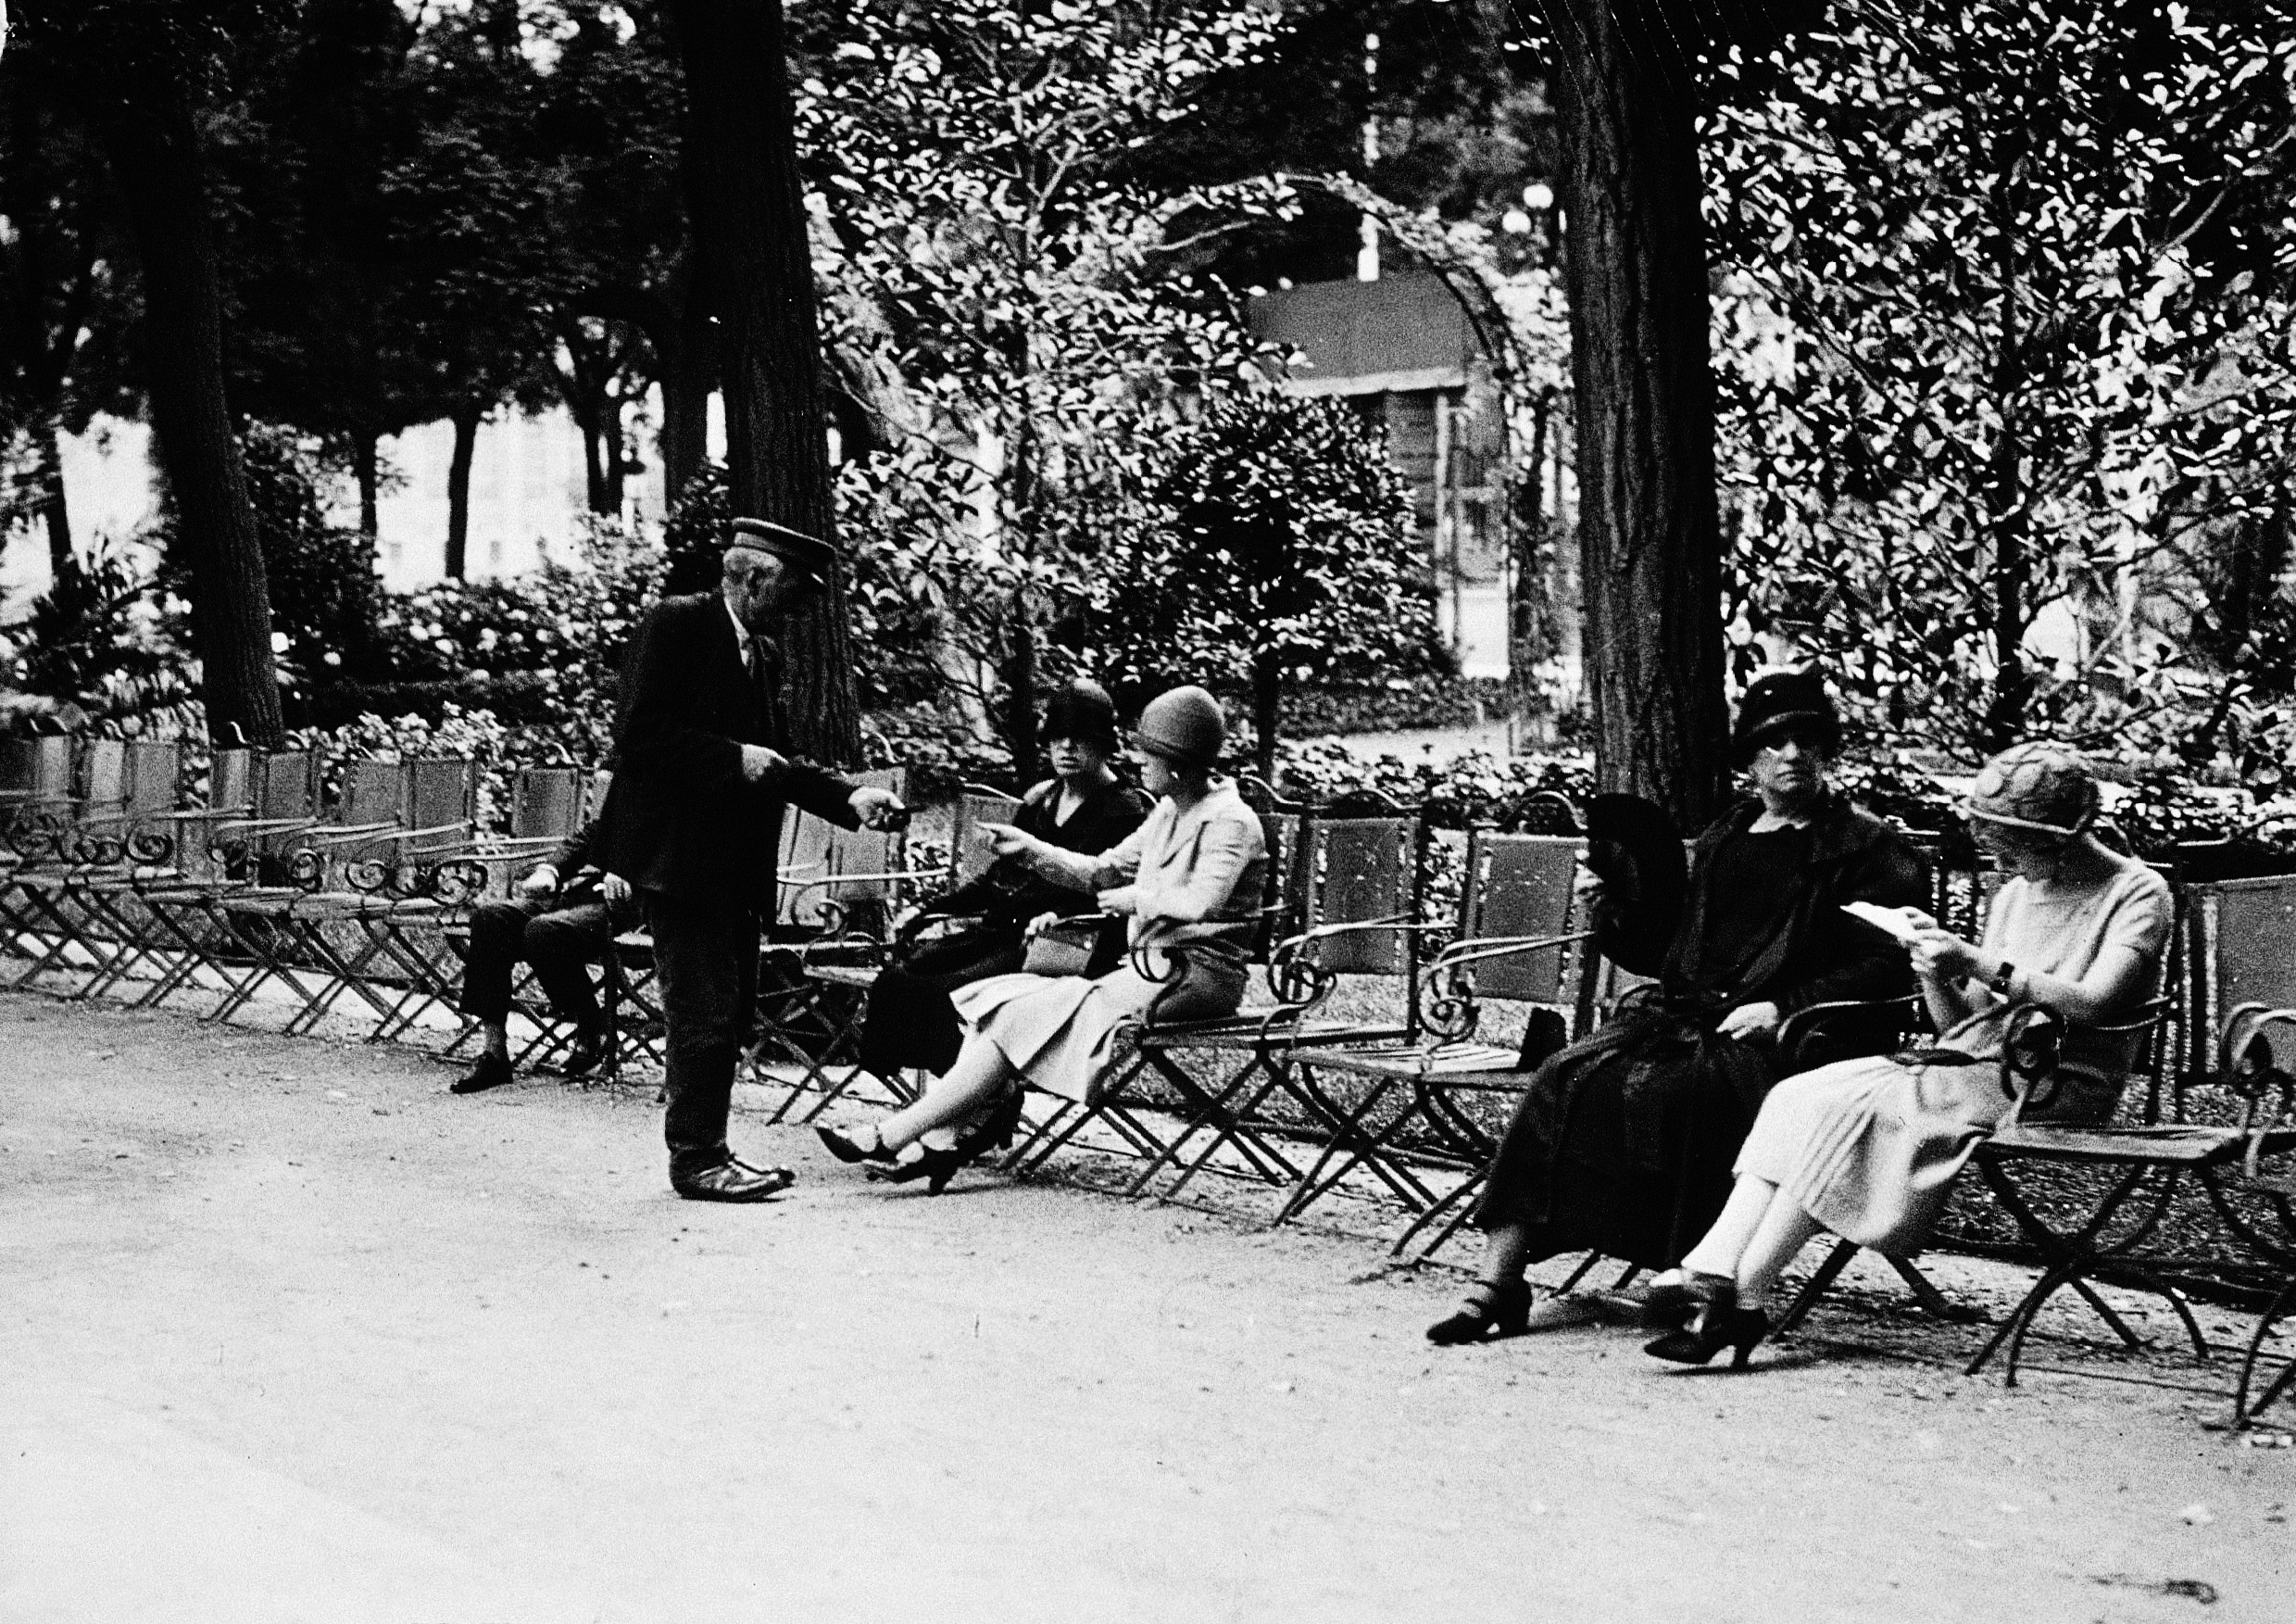 Paseo de Recoletos, 1929, Madrid